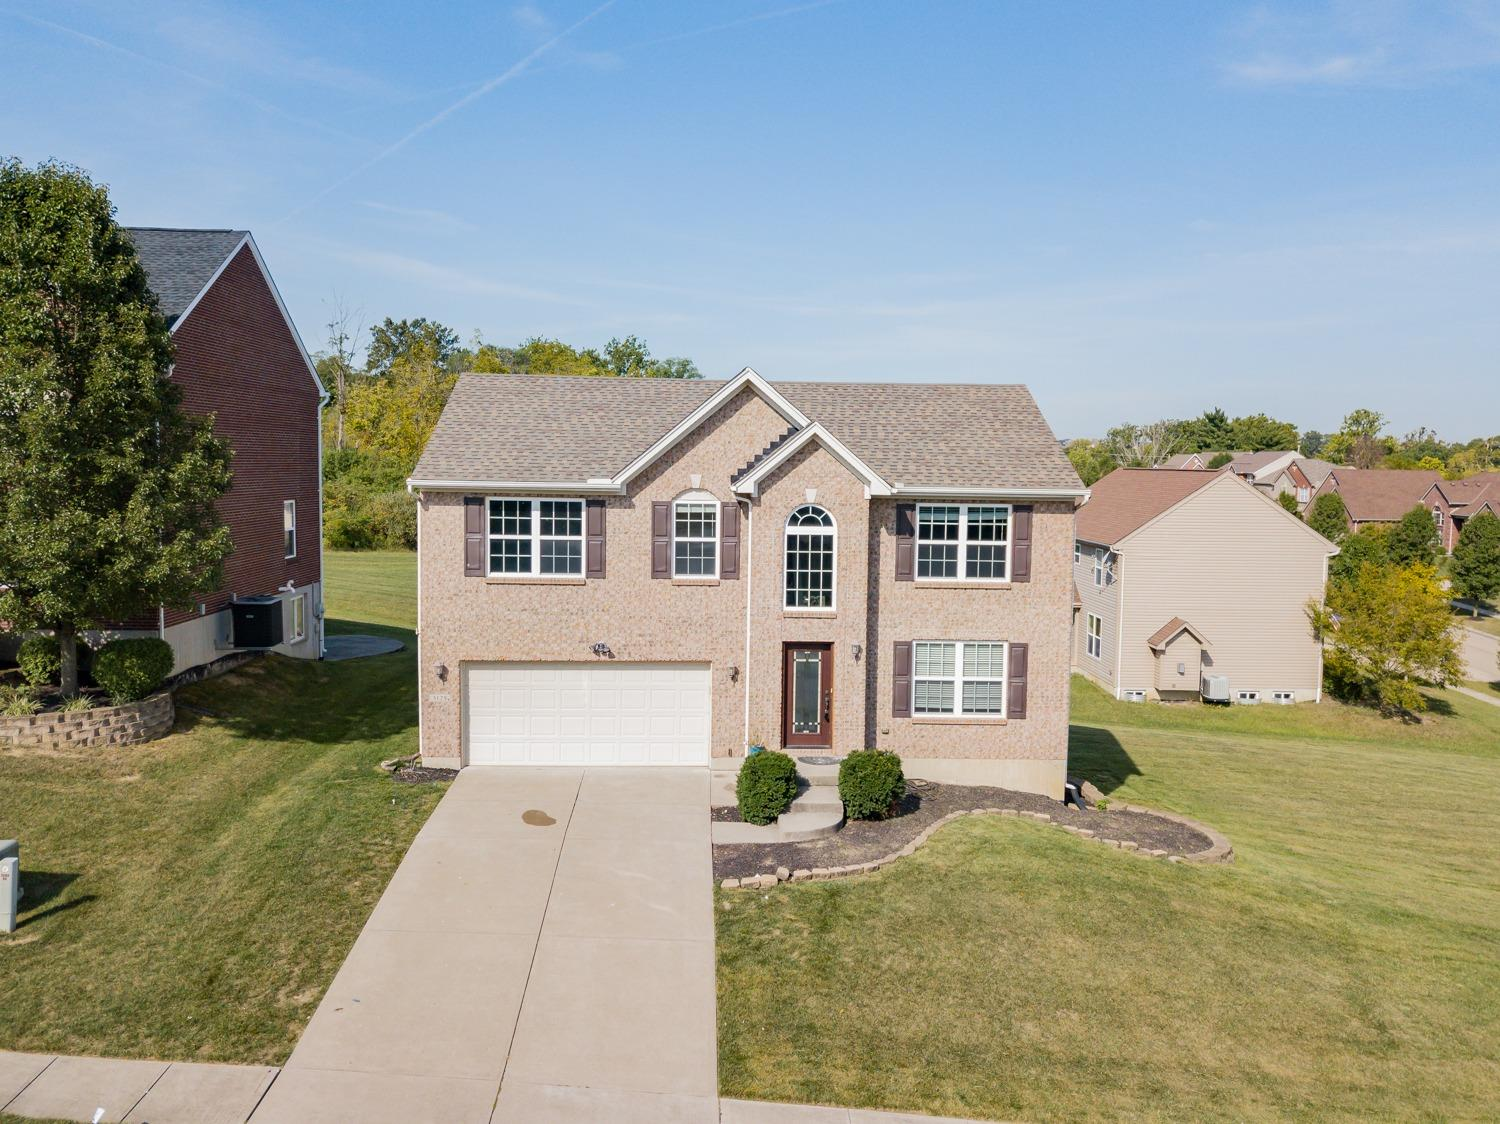 Property for sale at 5129 Springleaf Drive, Liberty Twp,  Ohio 45011